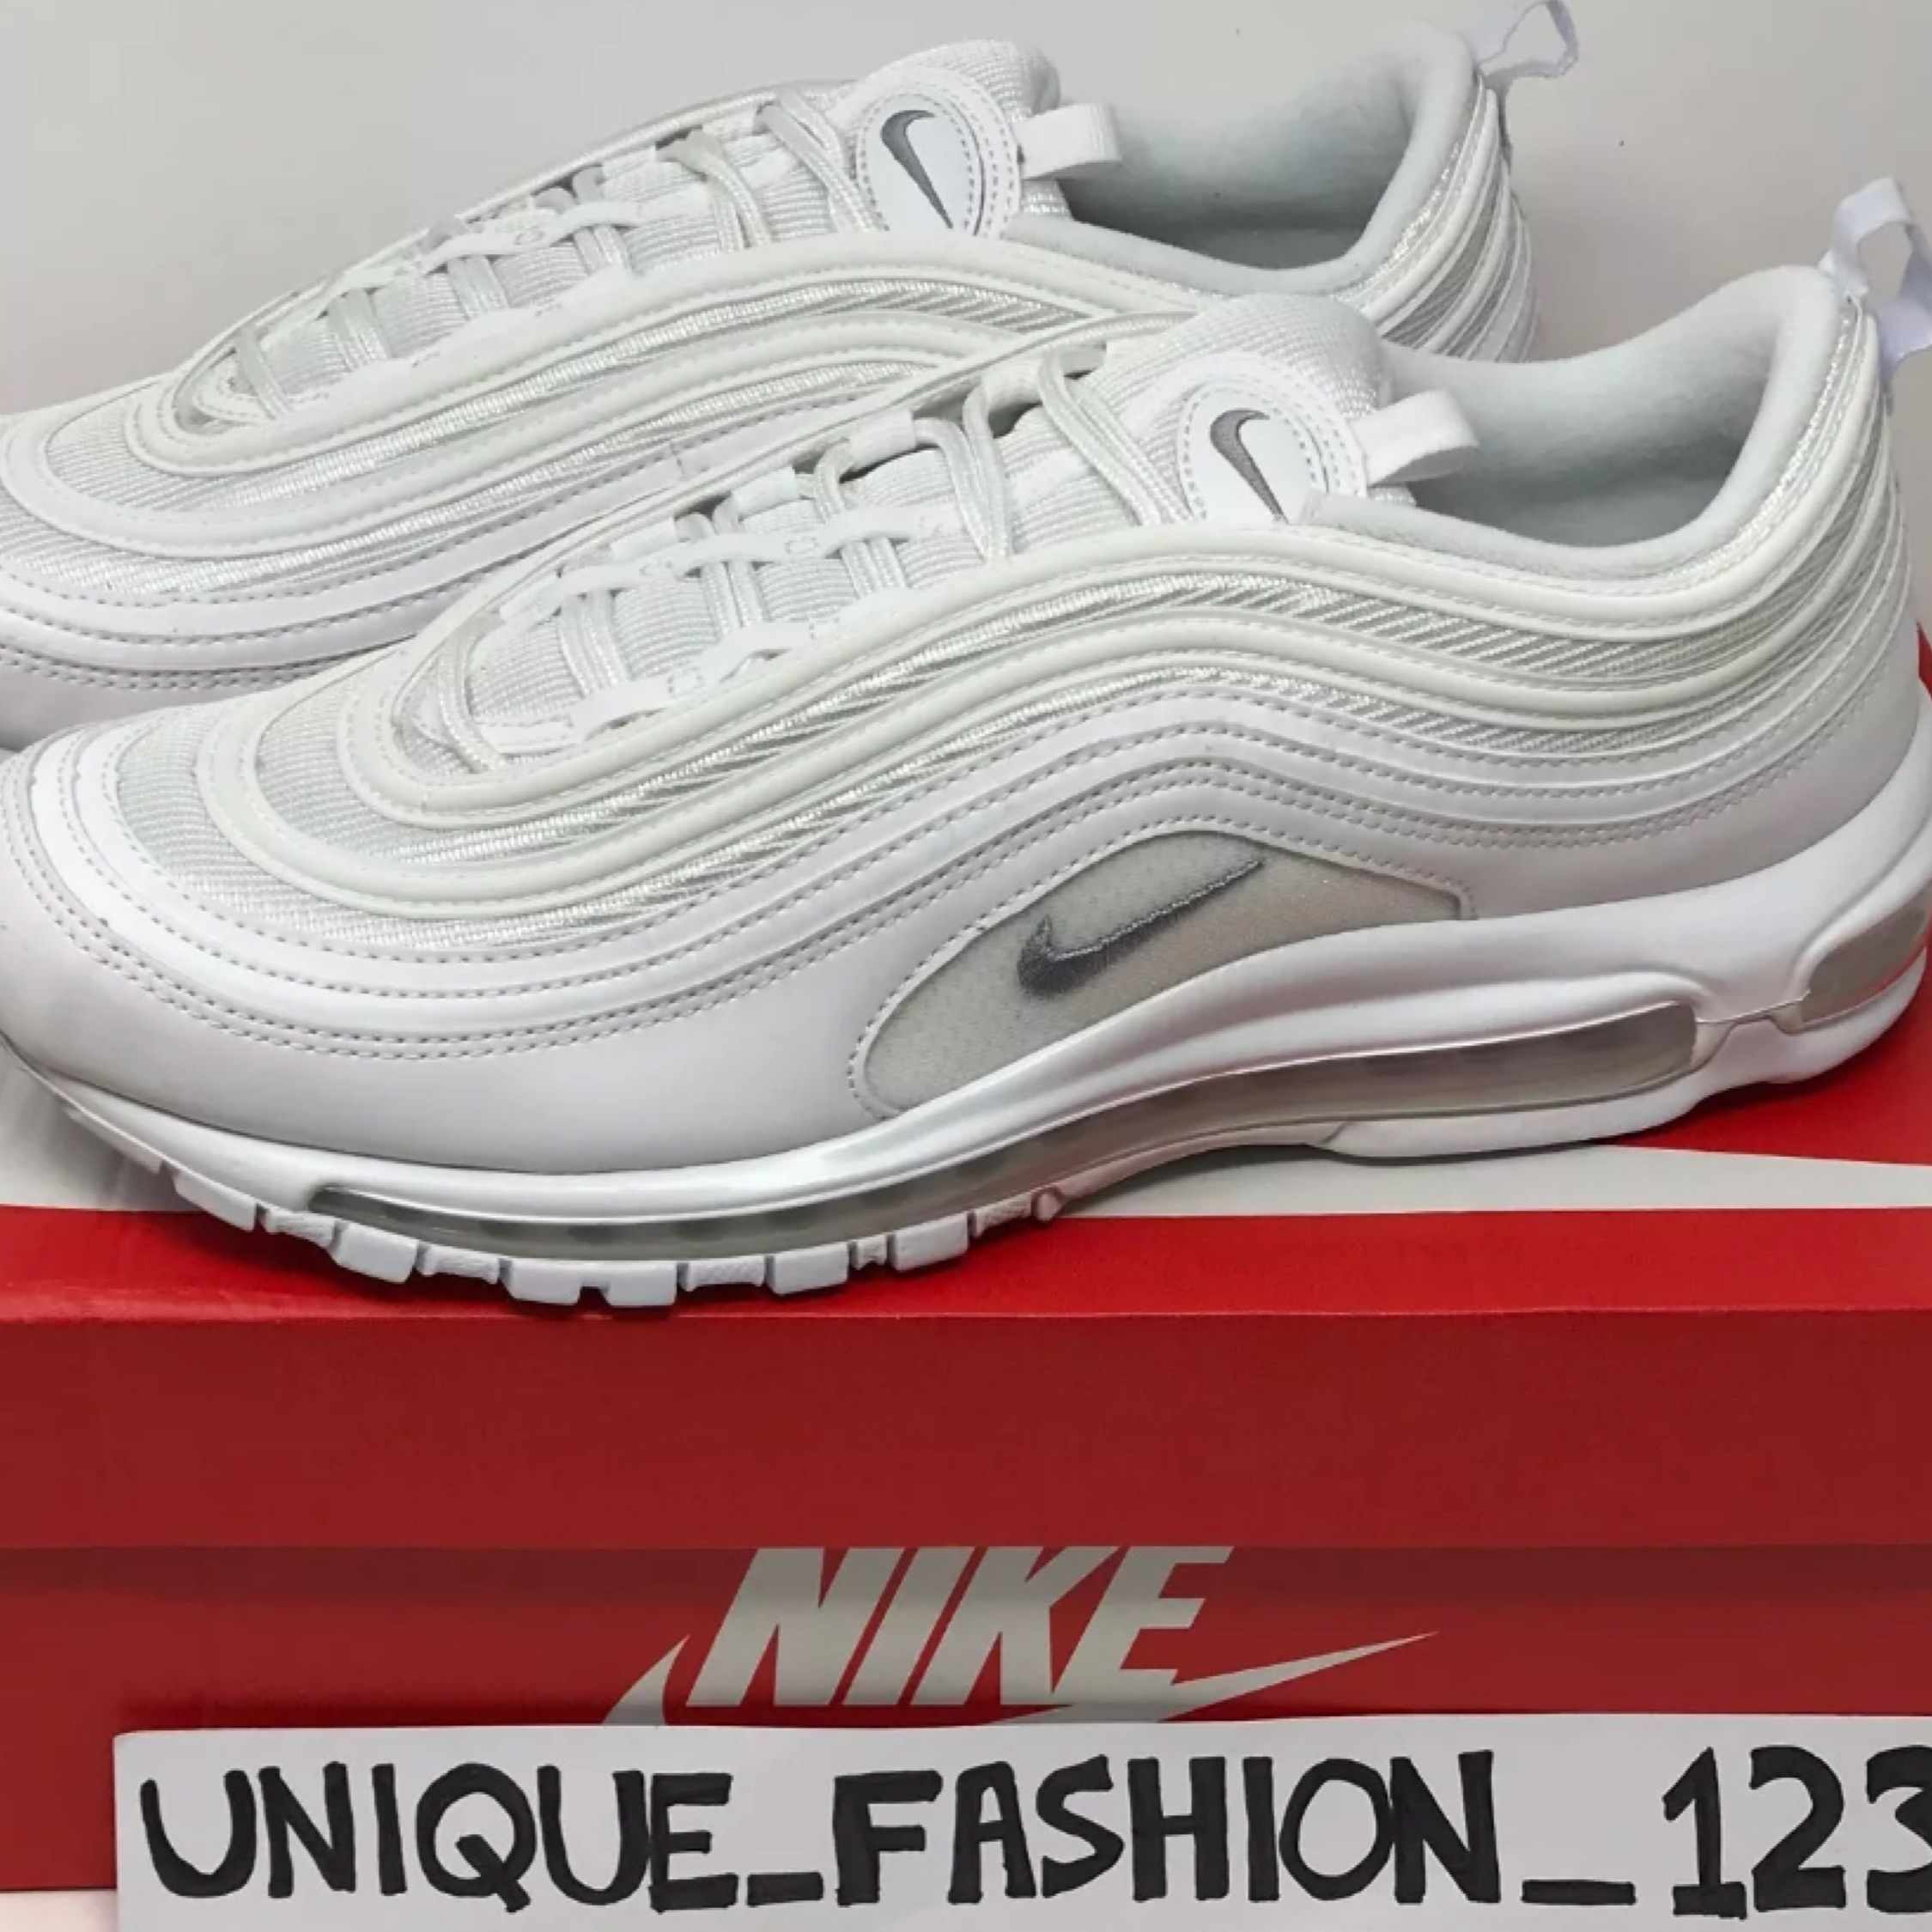 Where To Buy Nike Air Max 97 Silver Bullet SneakerNews.com